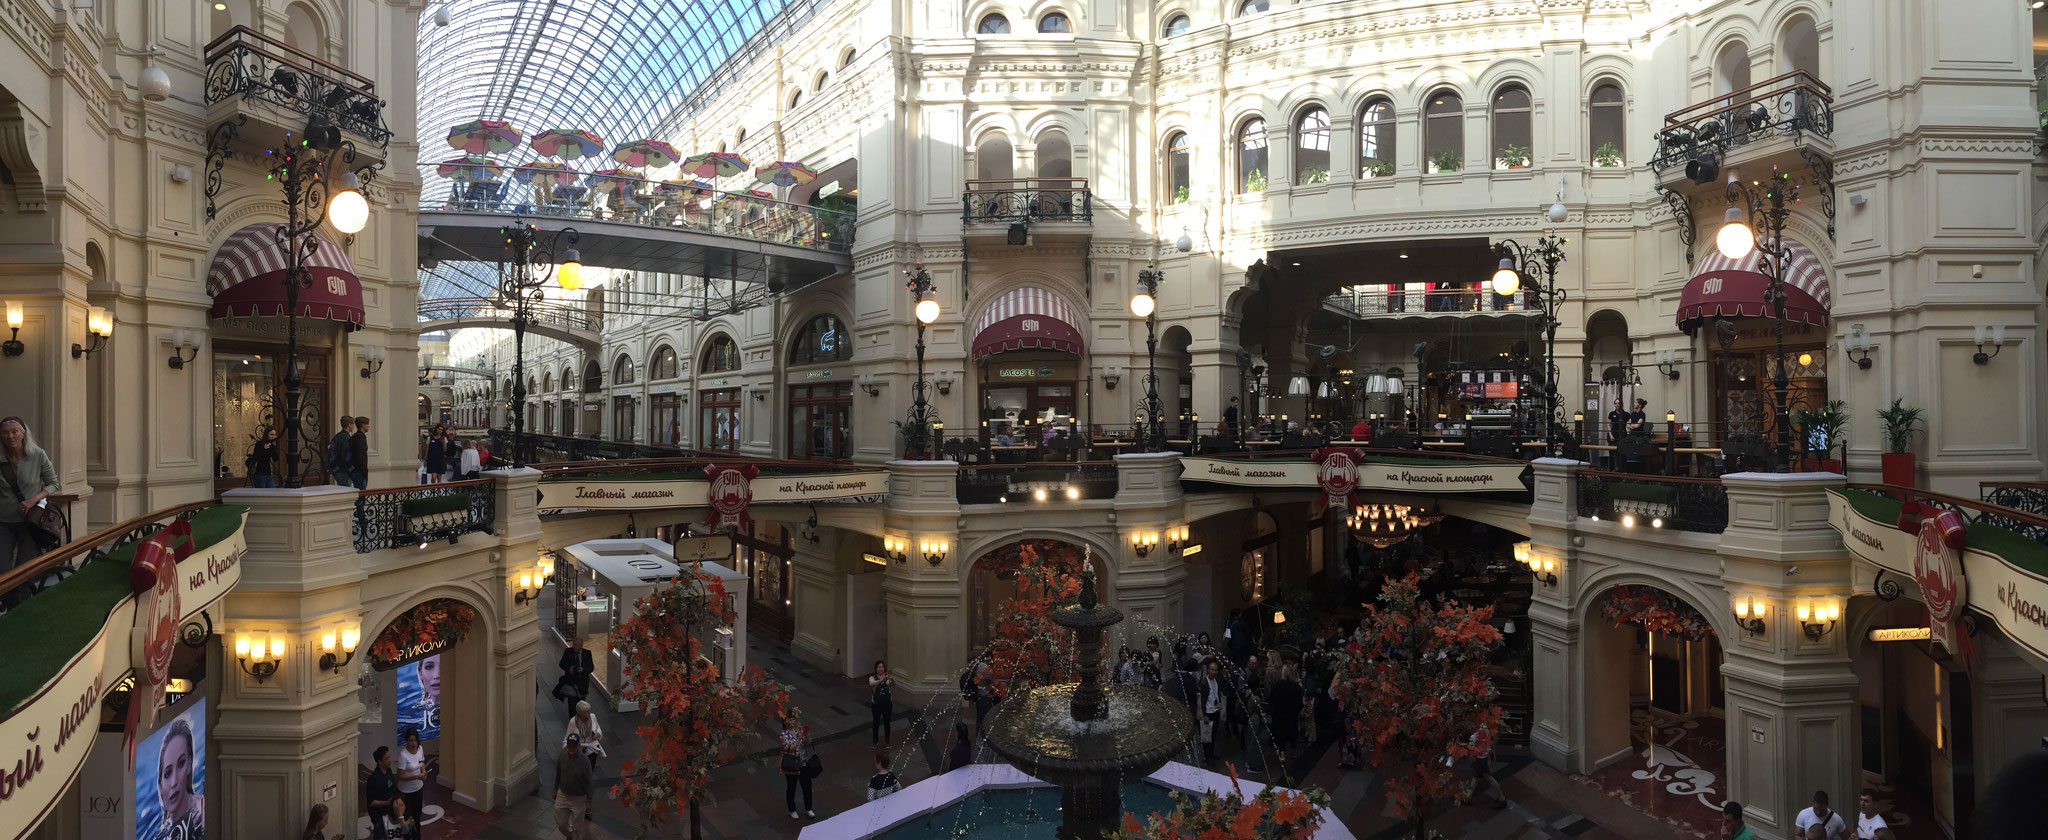 Shopping center in Red Square